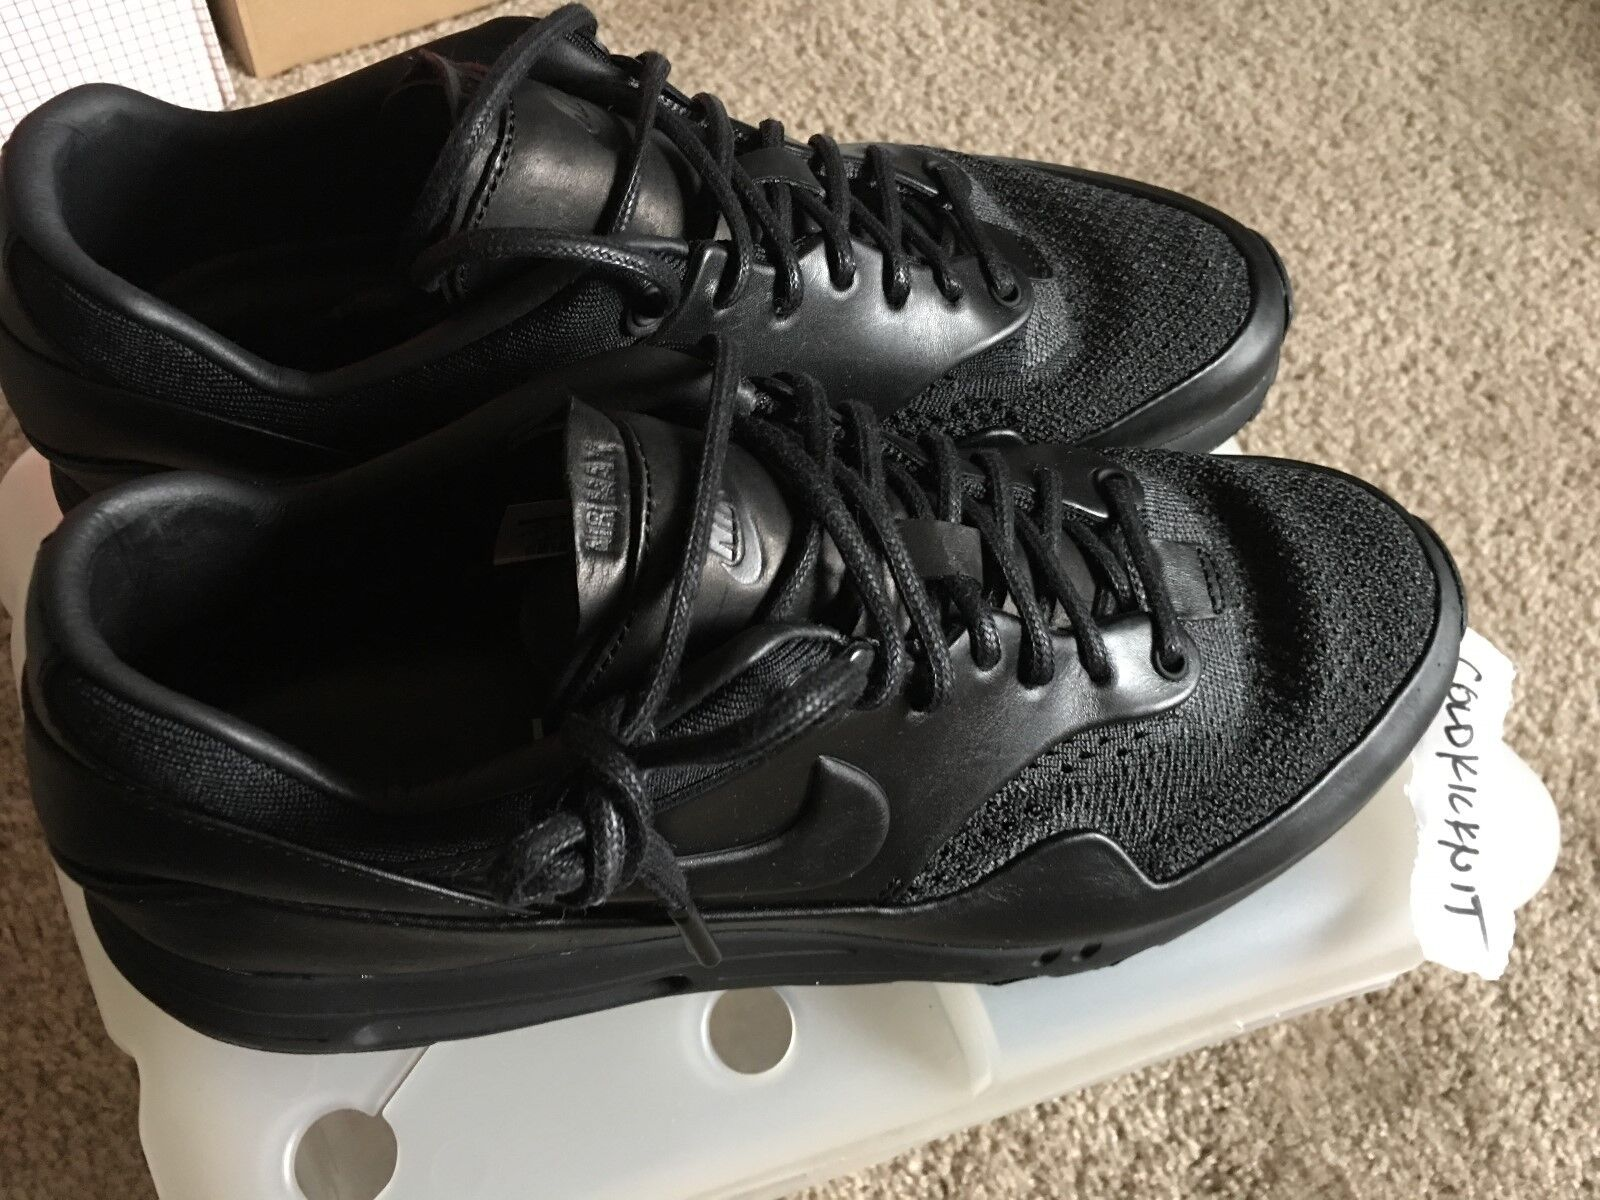 los angeles d4e9a 364c5 DS Nike Air Max 1 1 1 US 10 9.5 Flyknit Royal Arthur Huang NikeLab black